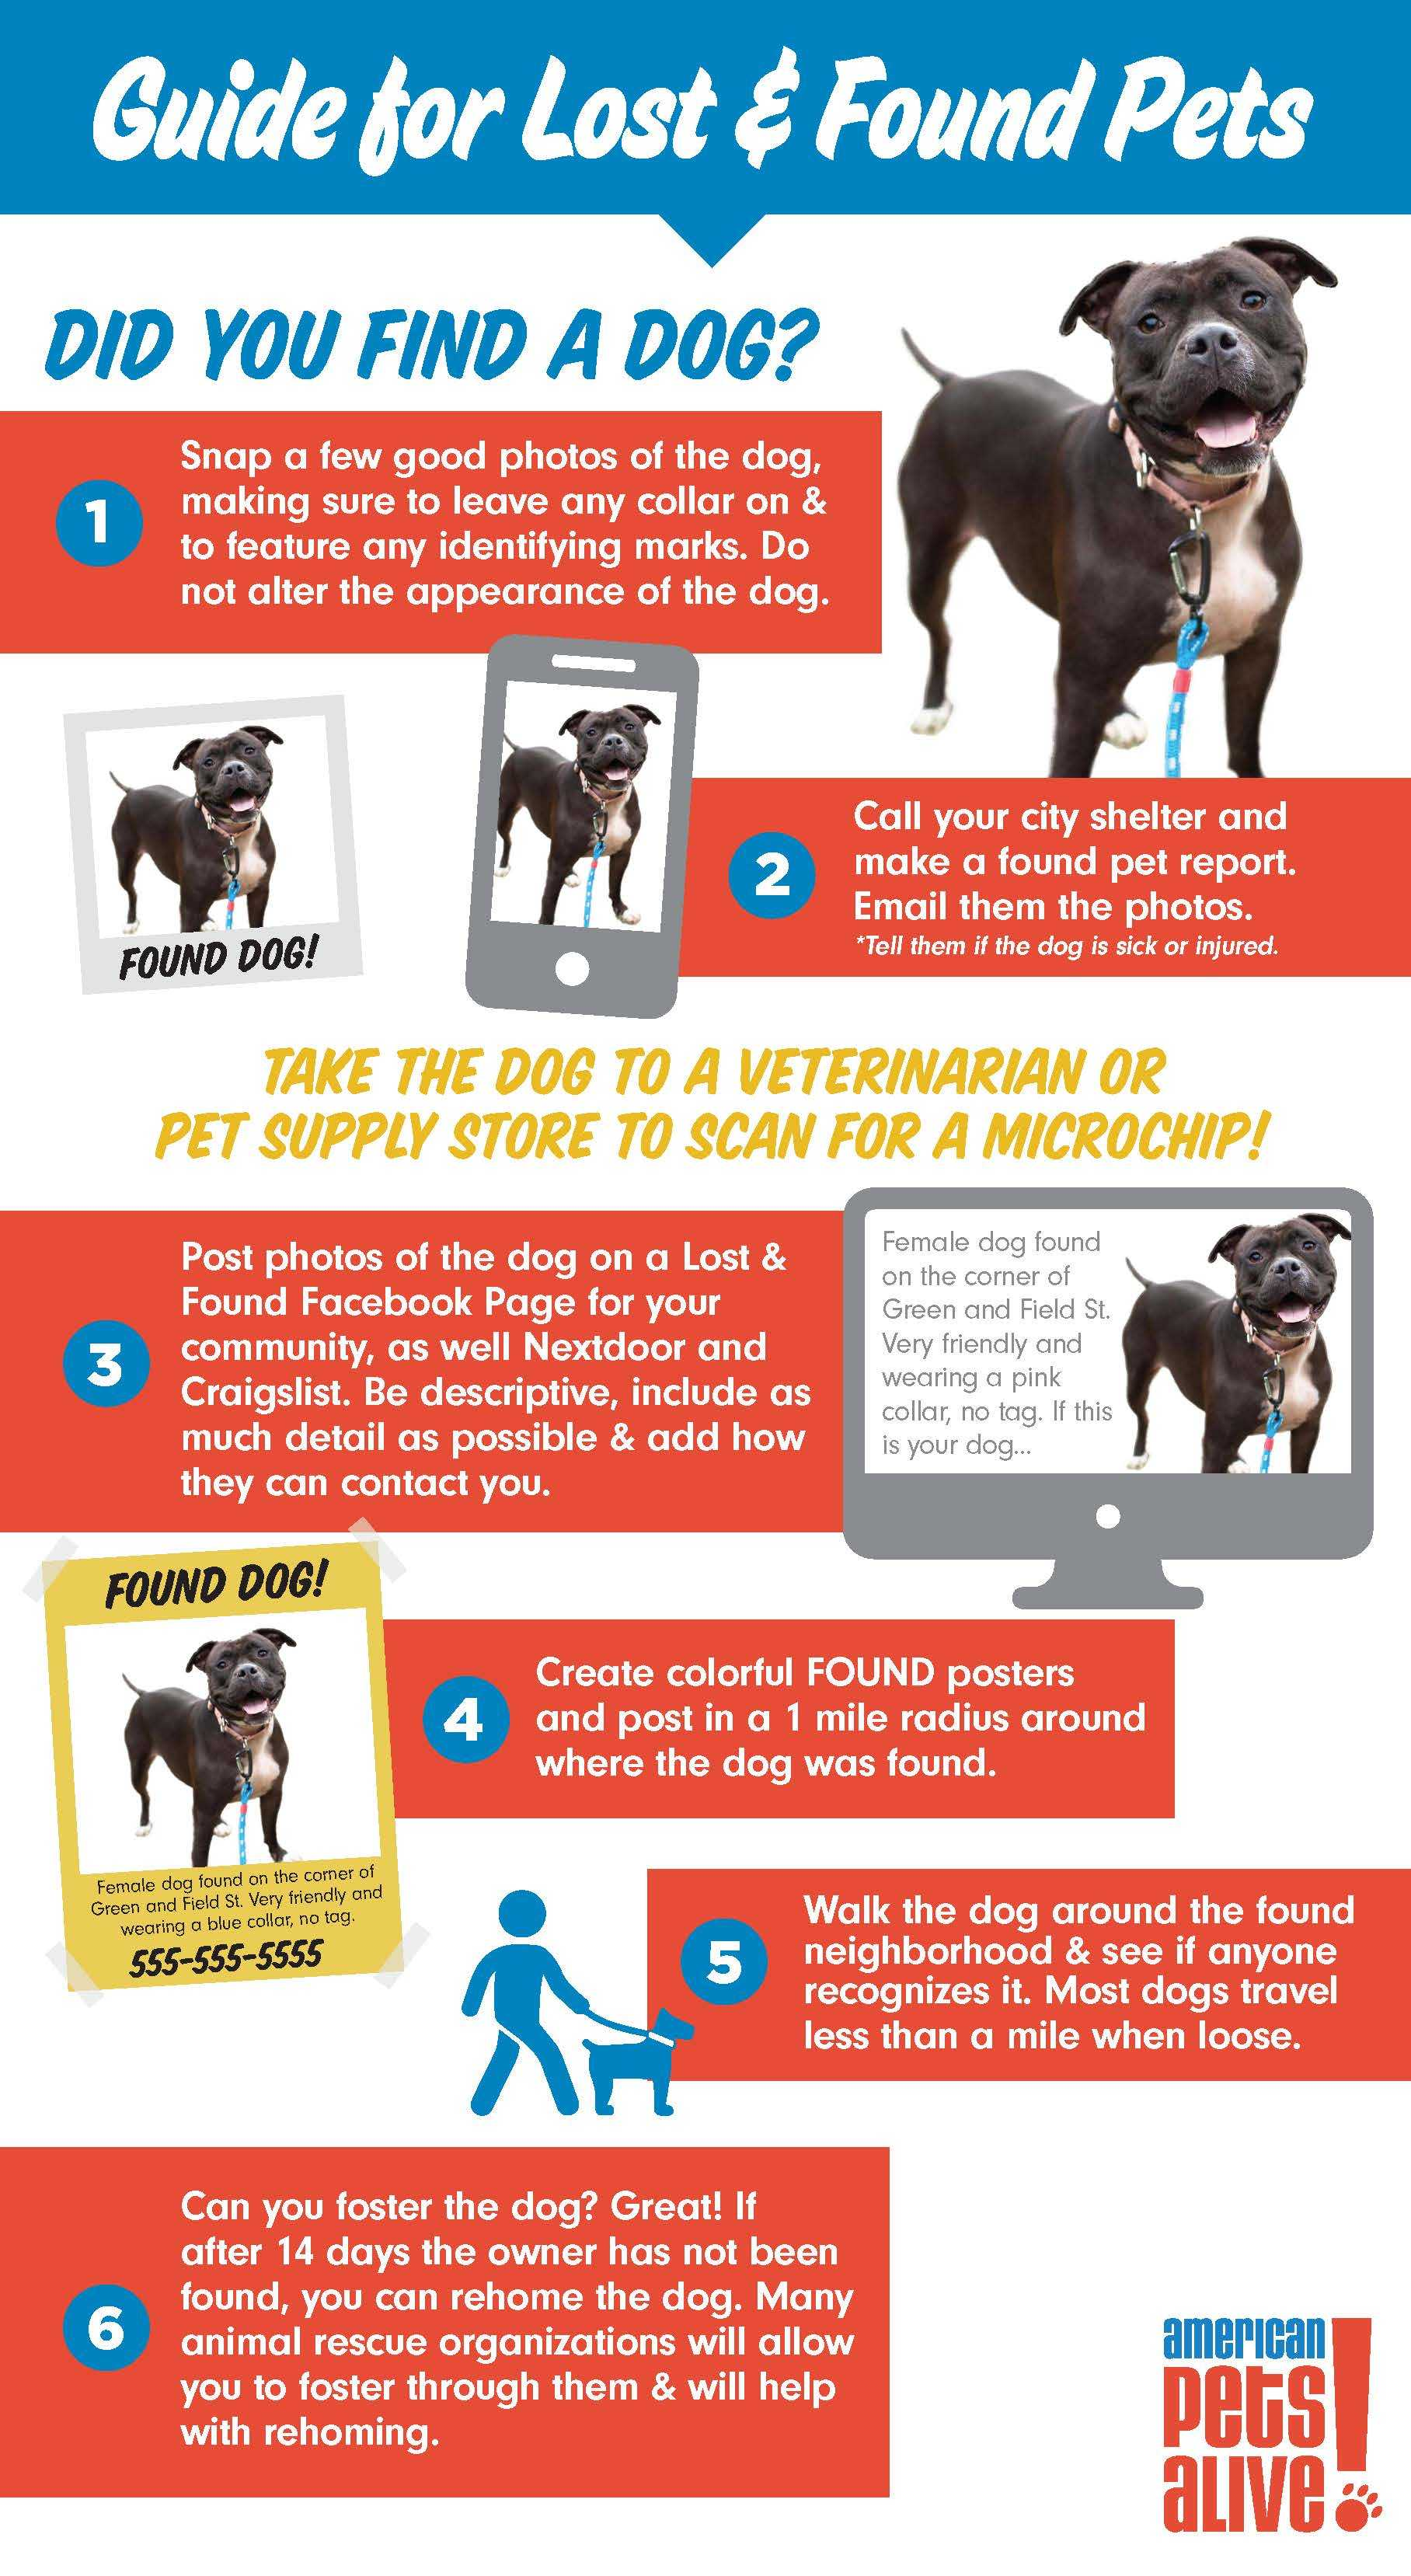 Guide for Lost and Found Dogs